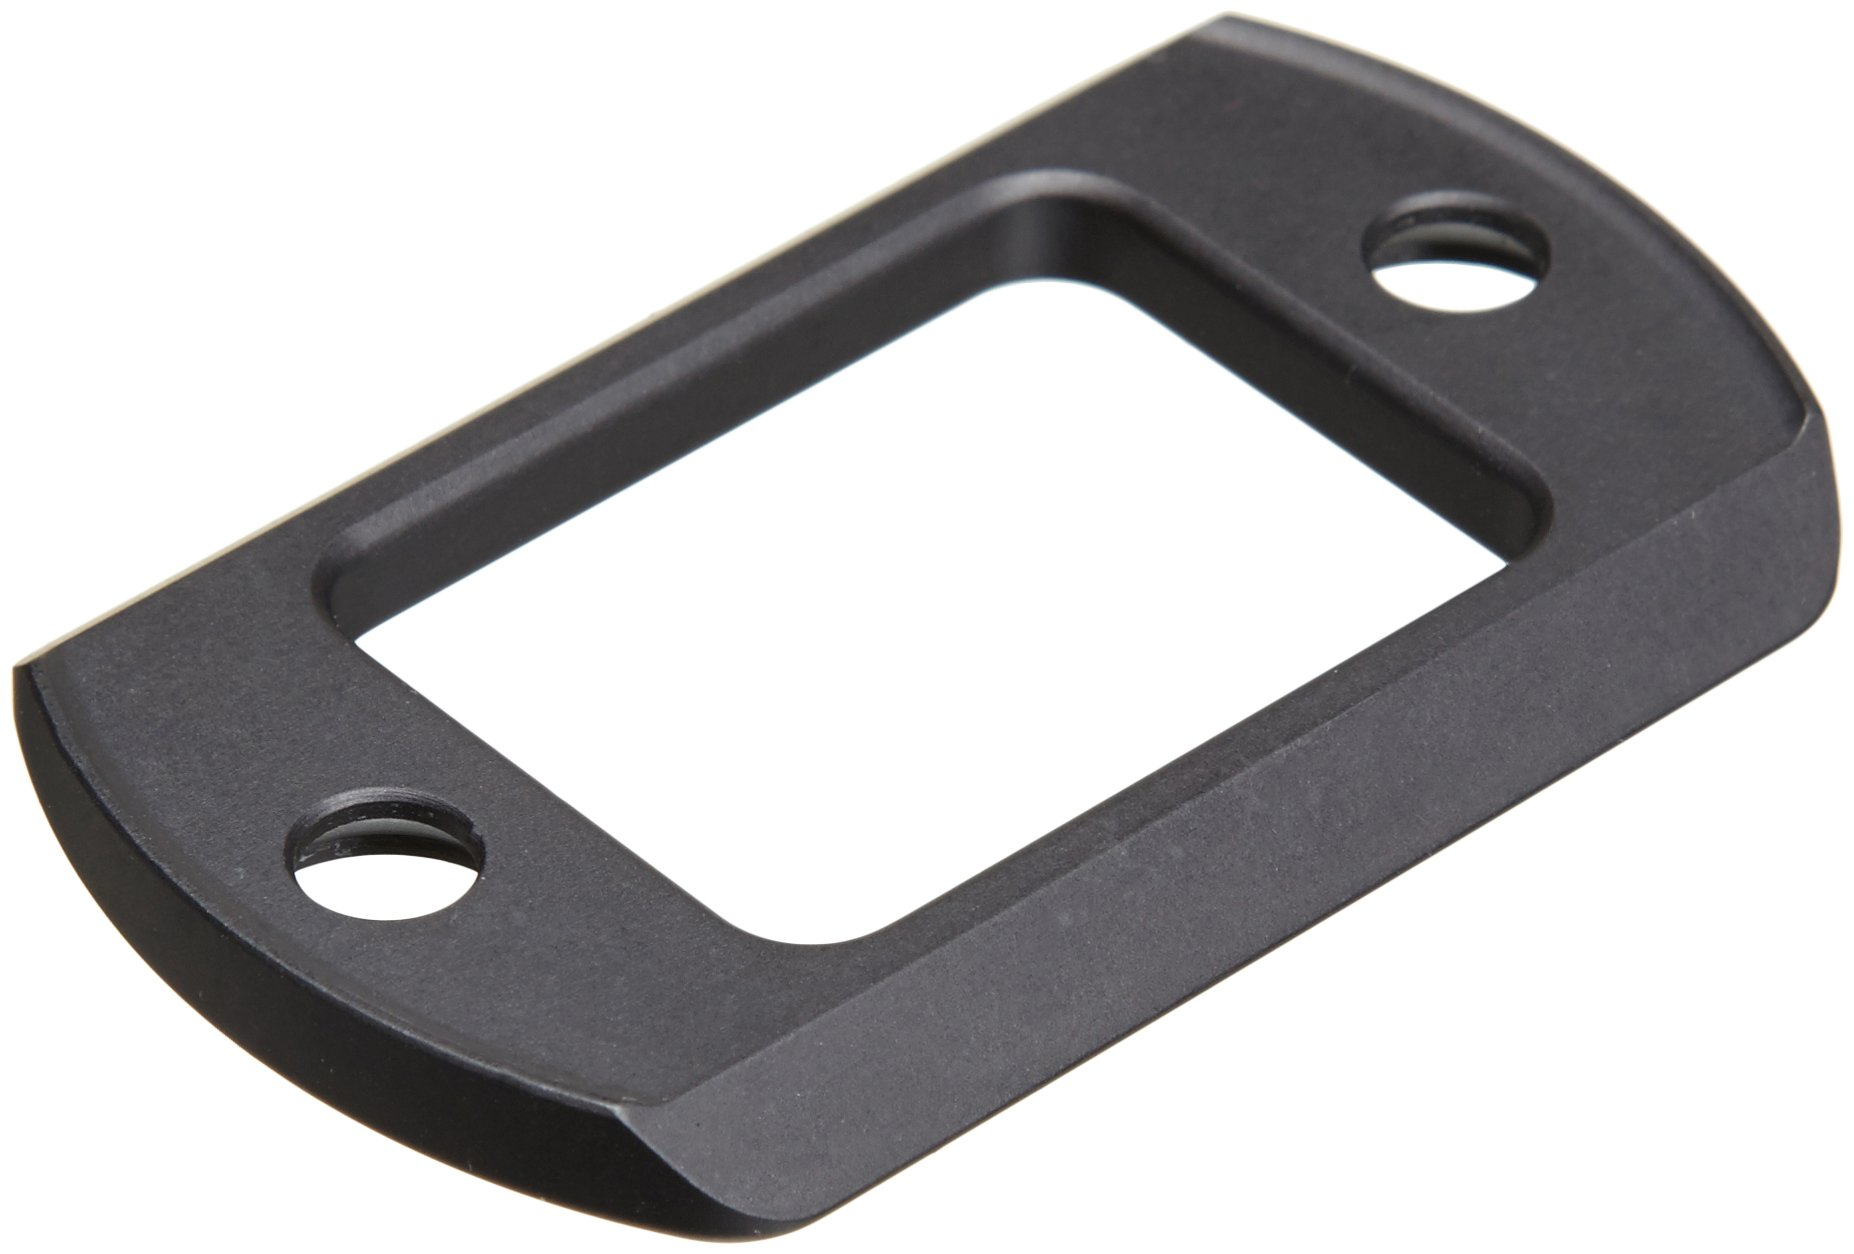 SunwayFoto AM-01 Arca Dovetail Mount Plate for DDH-01 Clamp, DDP-64 /DDP-64M /DDP-64S Indexing Rotators